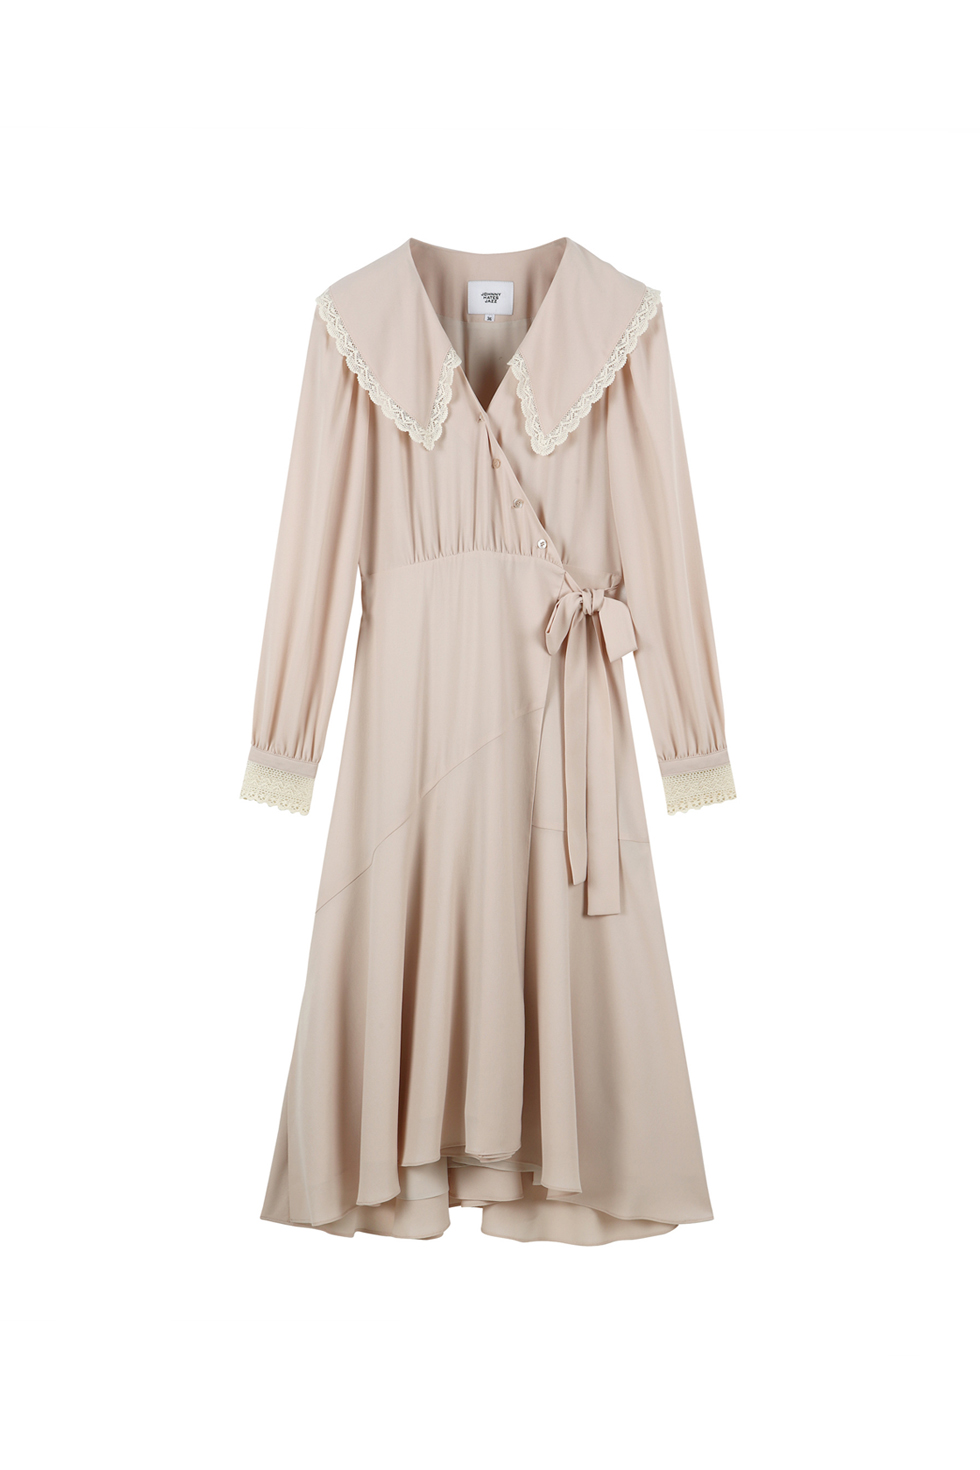 V-NECK WRAP DRESS - BEIGE